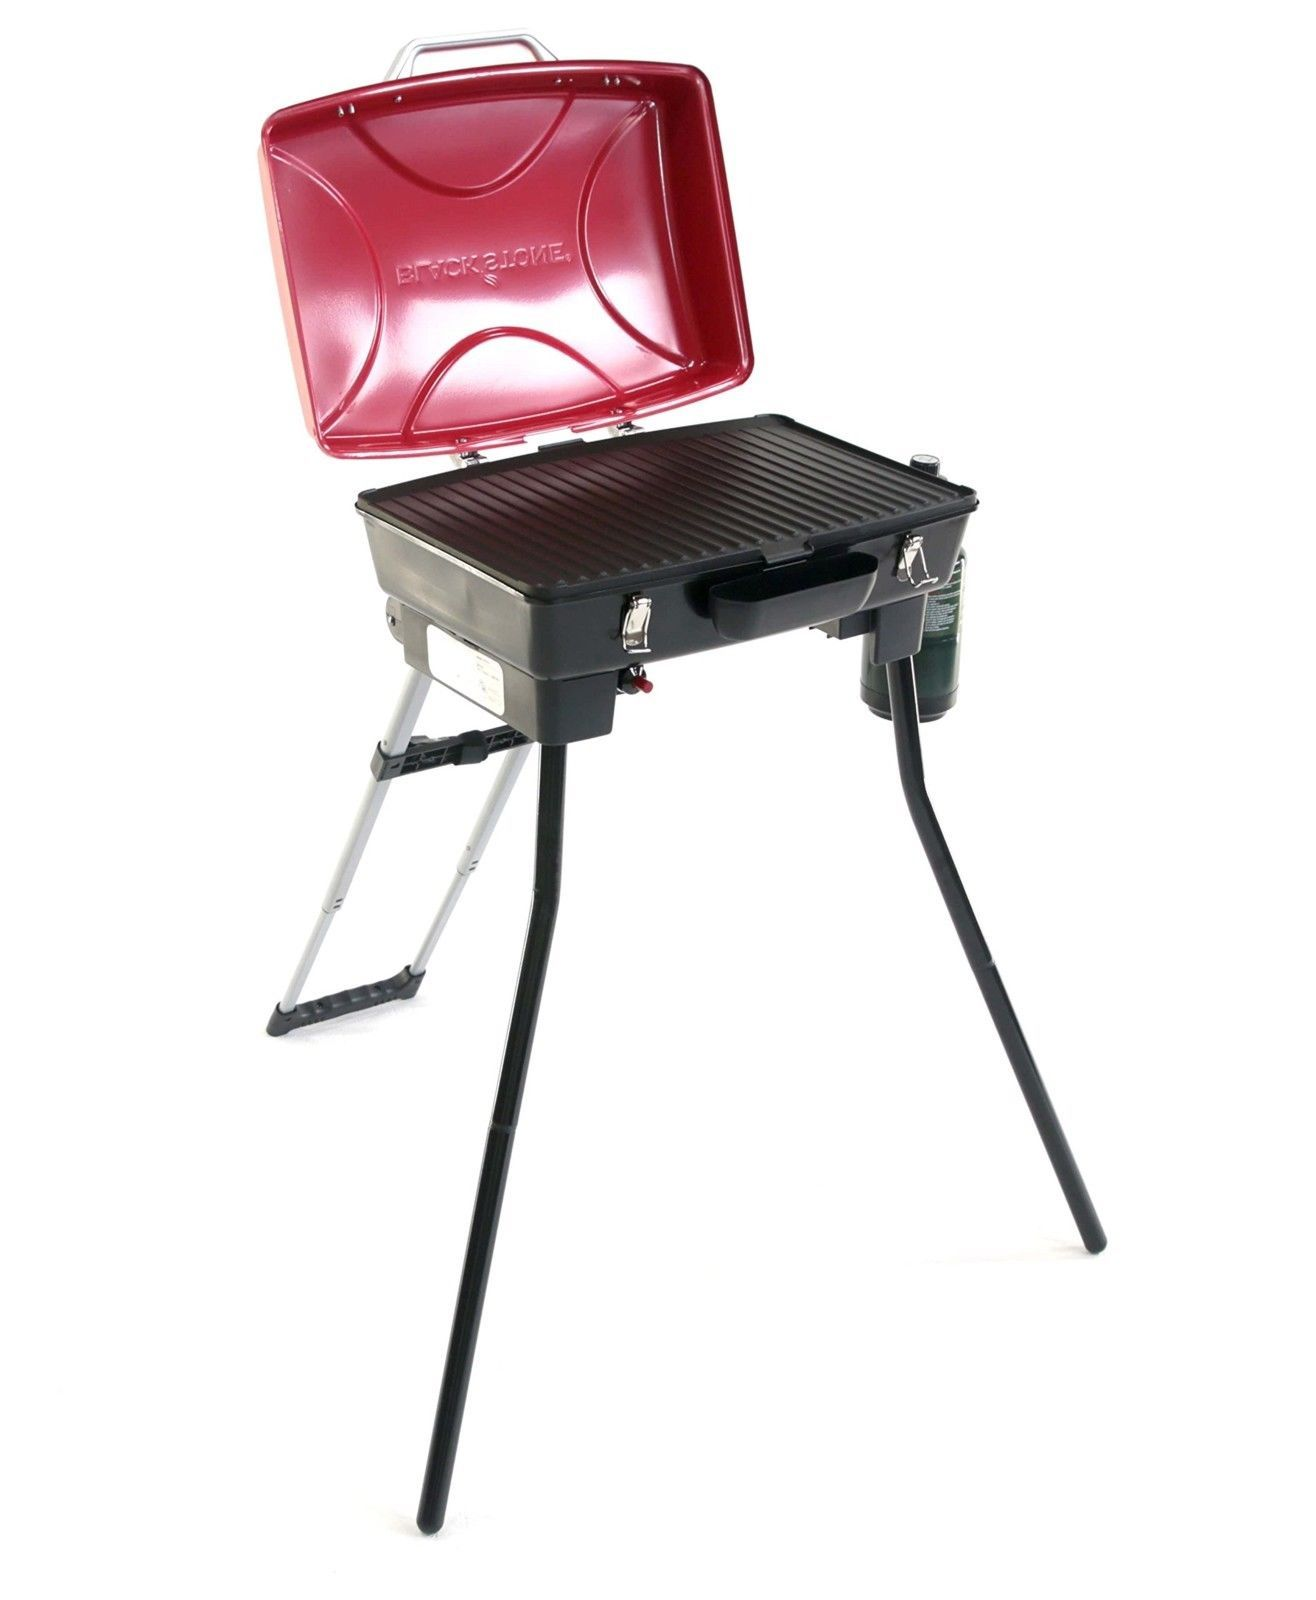 Weber Q 2200 1 Burner Propane Gas Grill Propane Gas Grill Grilling Best Charcoal Grill